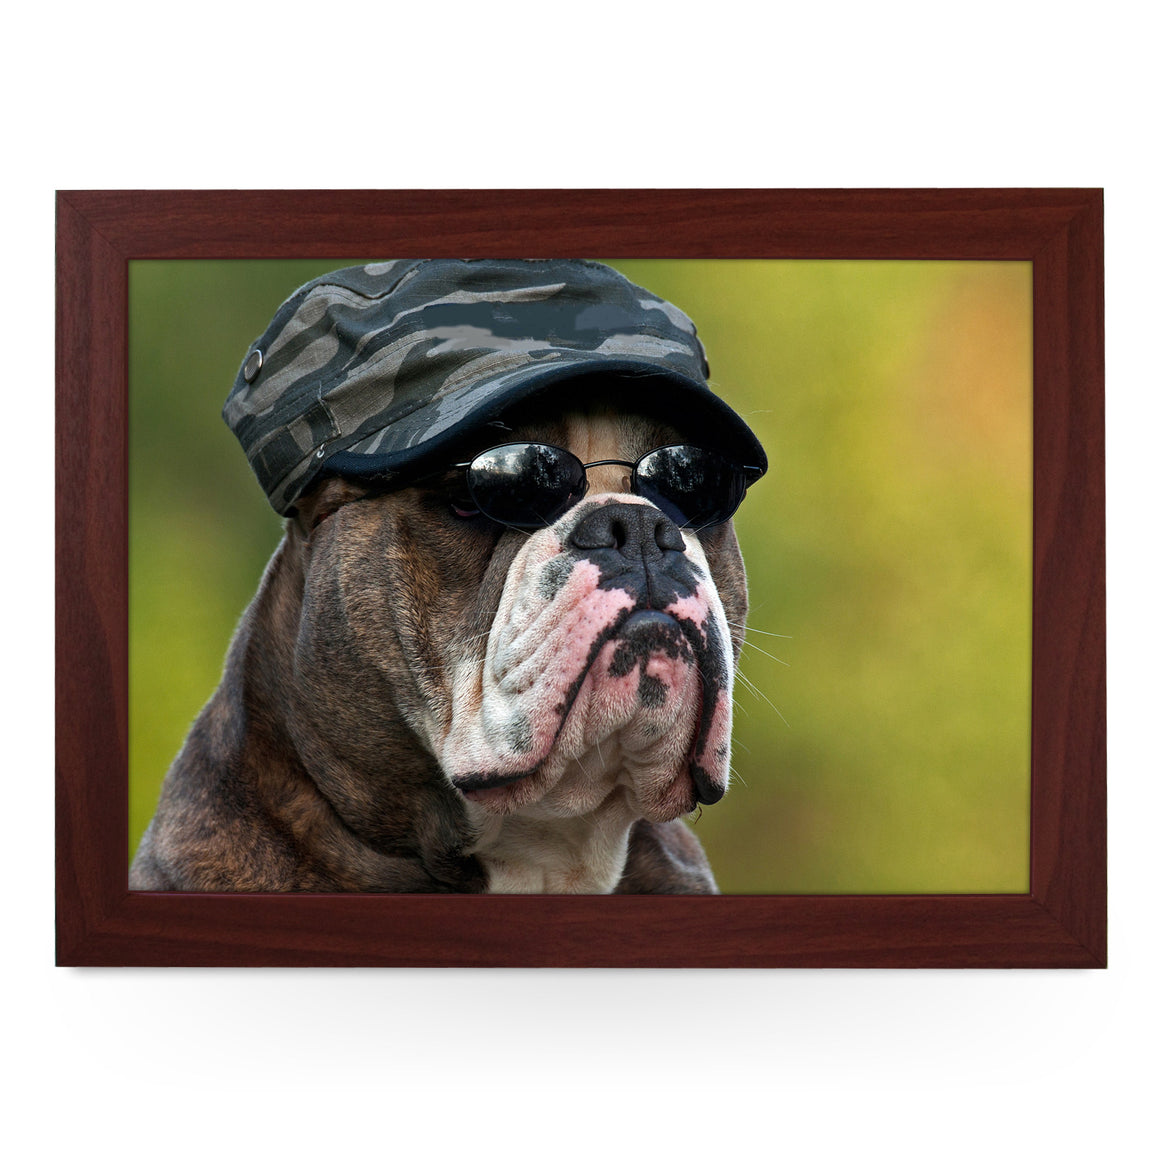 Dressed Up Army Bull Dog Lap Tray - L0152